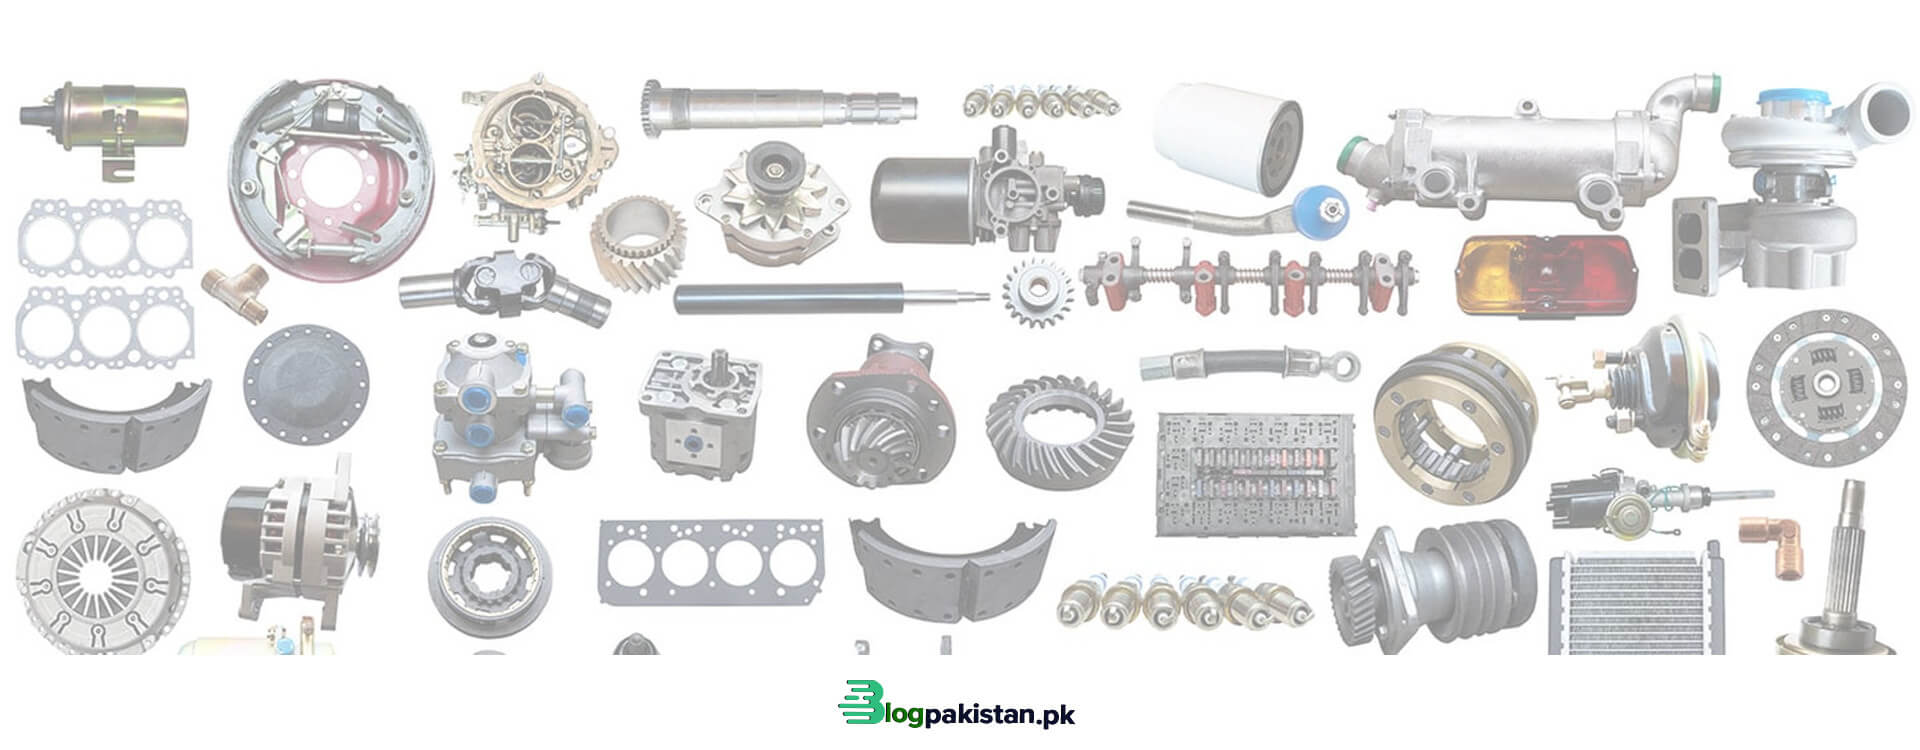 online shops to buy spare parts